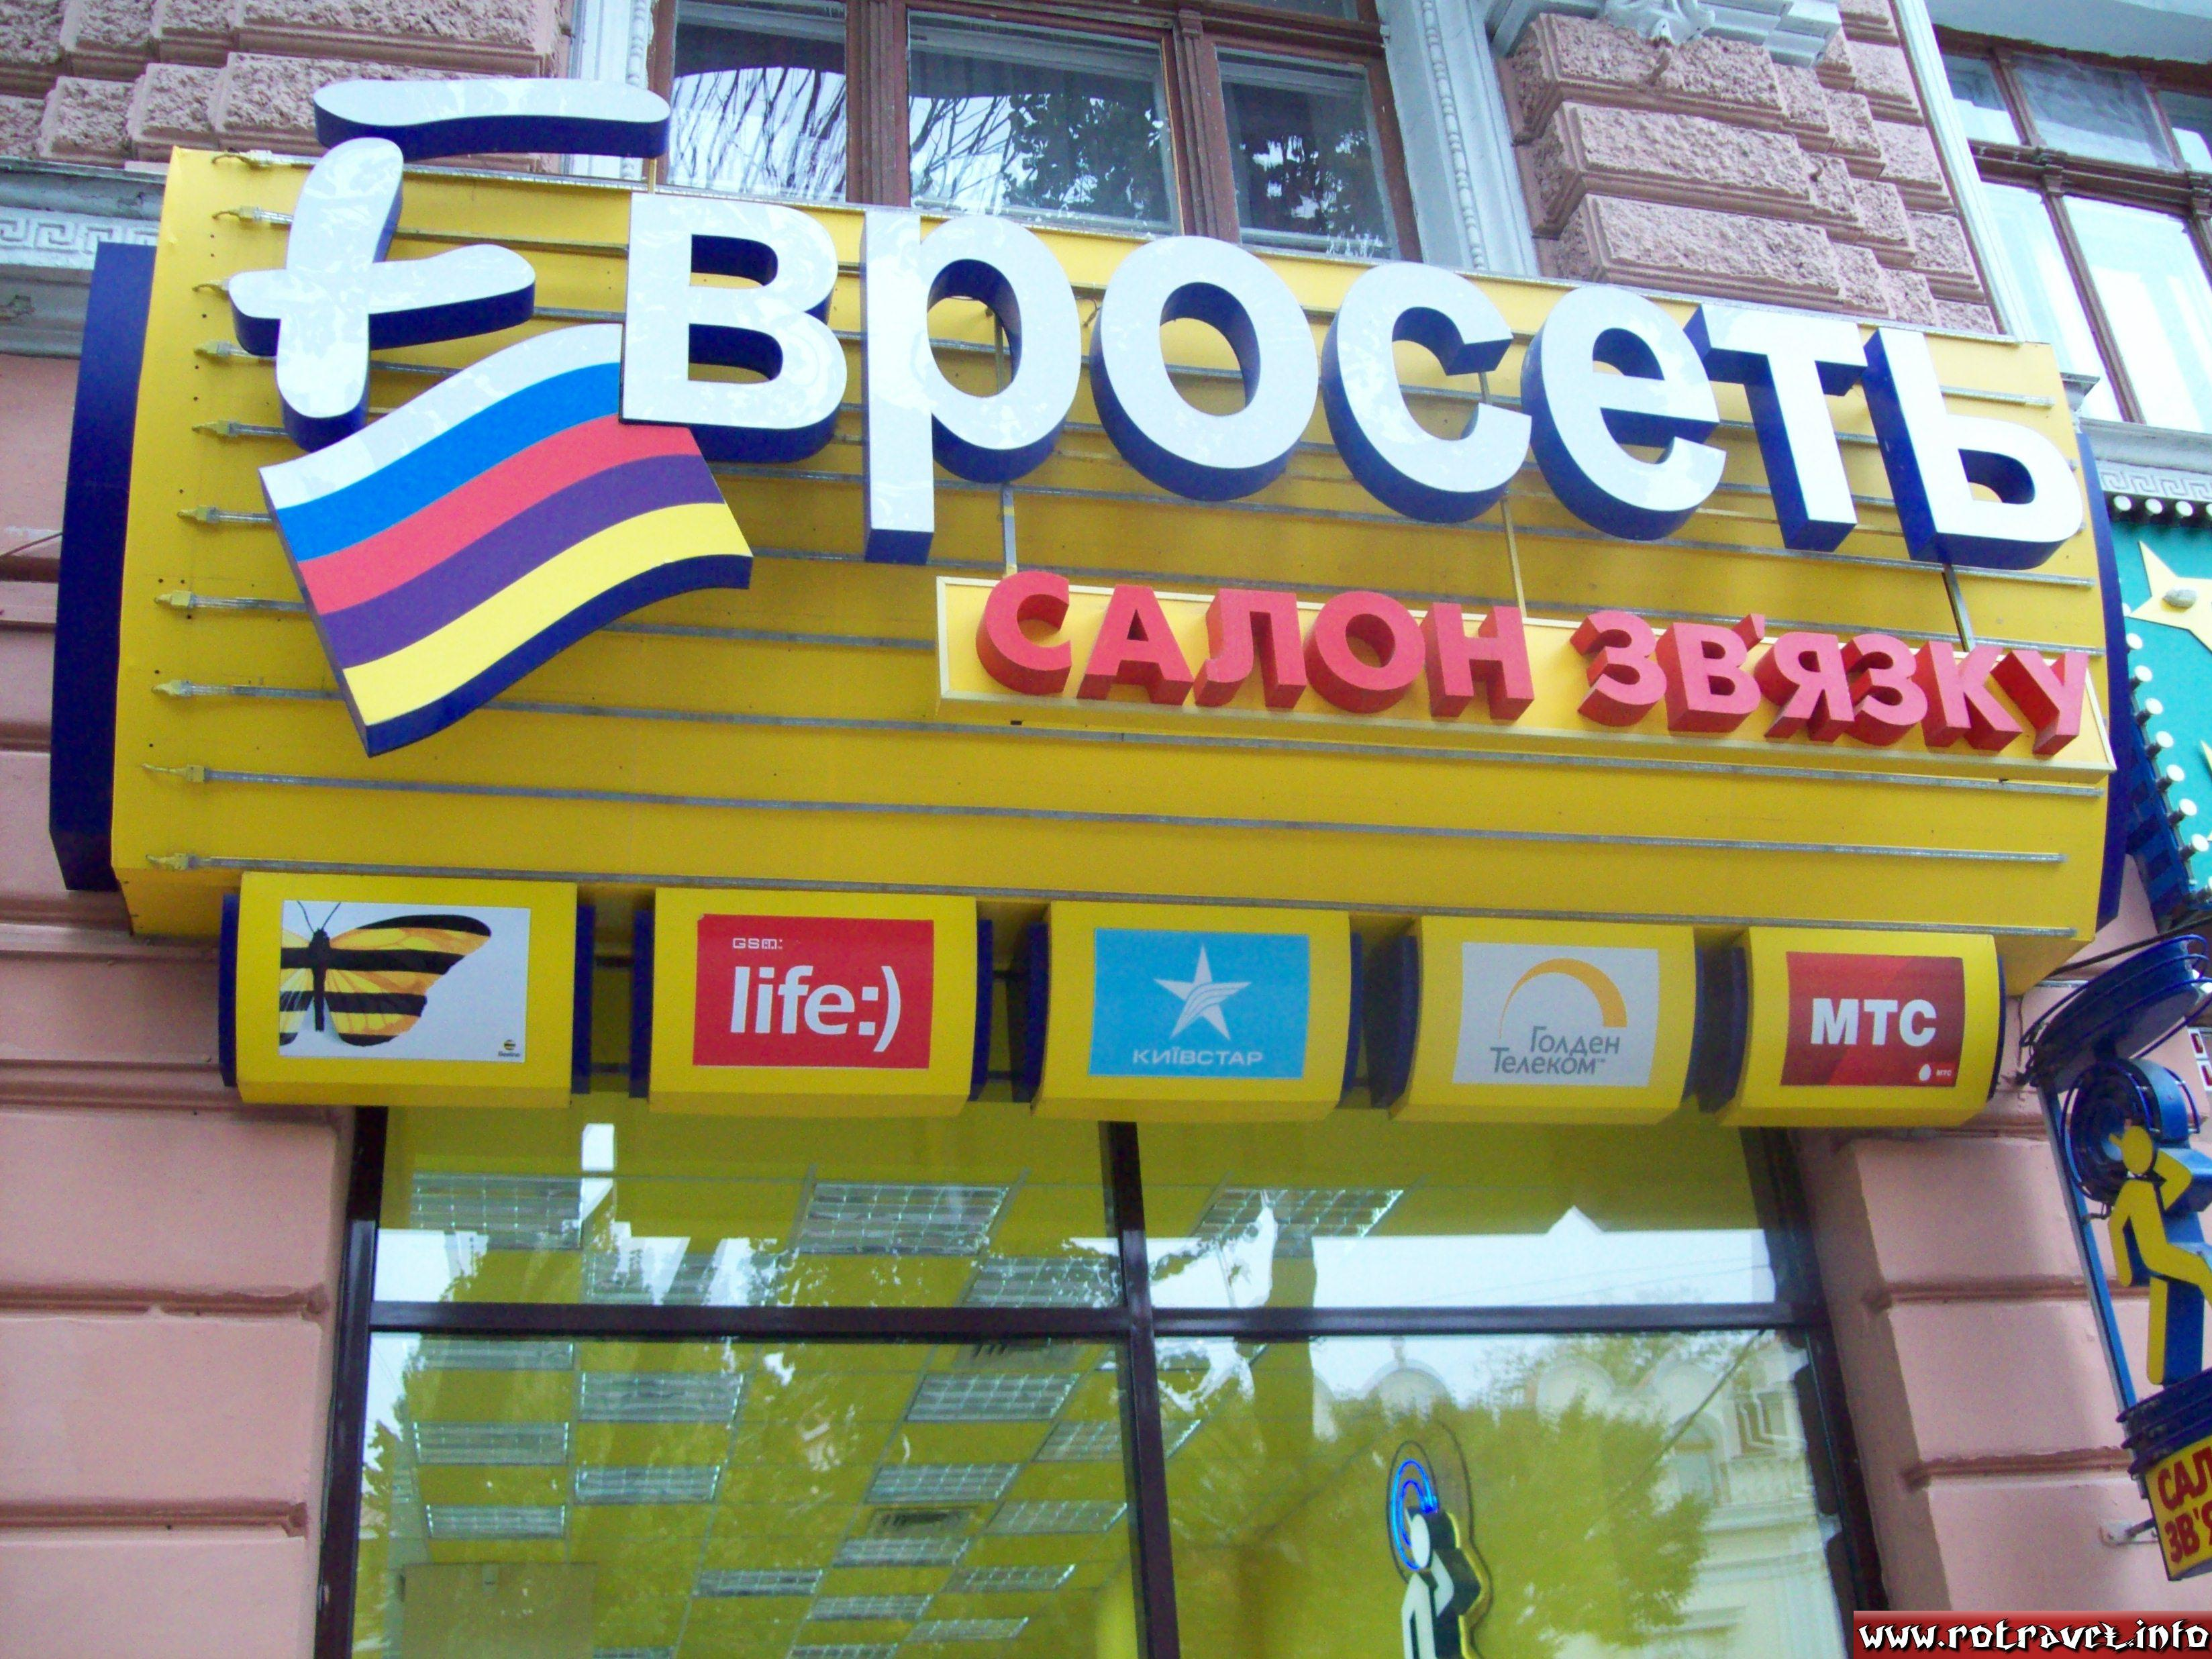 Beeline mobile phone company from Russia and life:), Kyivstar, Golden Telecom and MTS from Ukraine